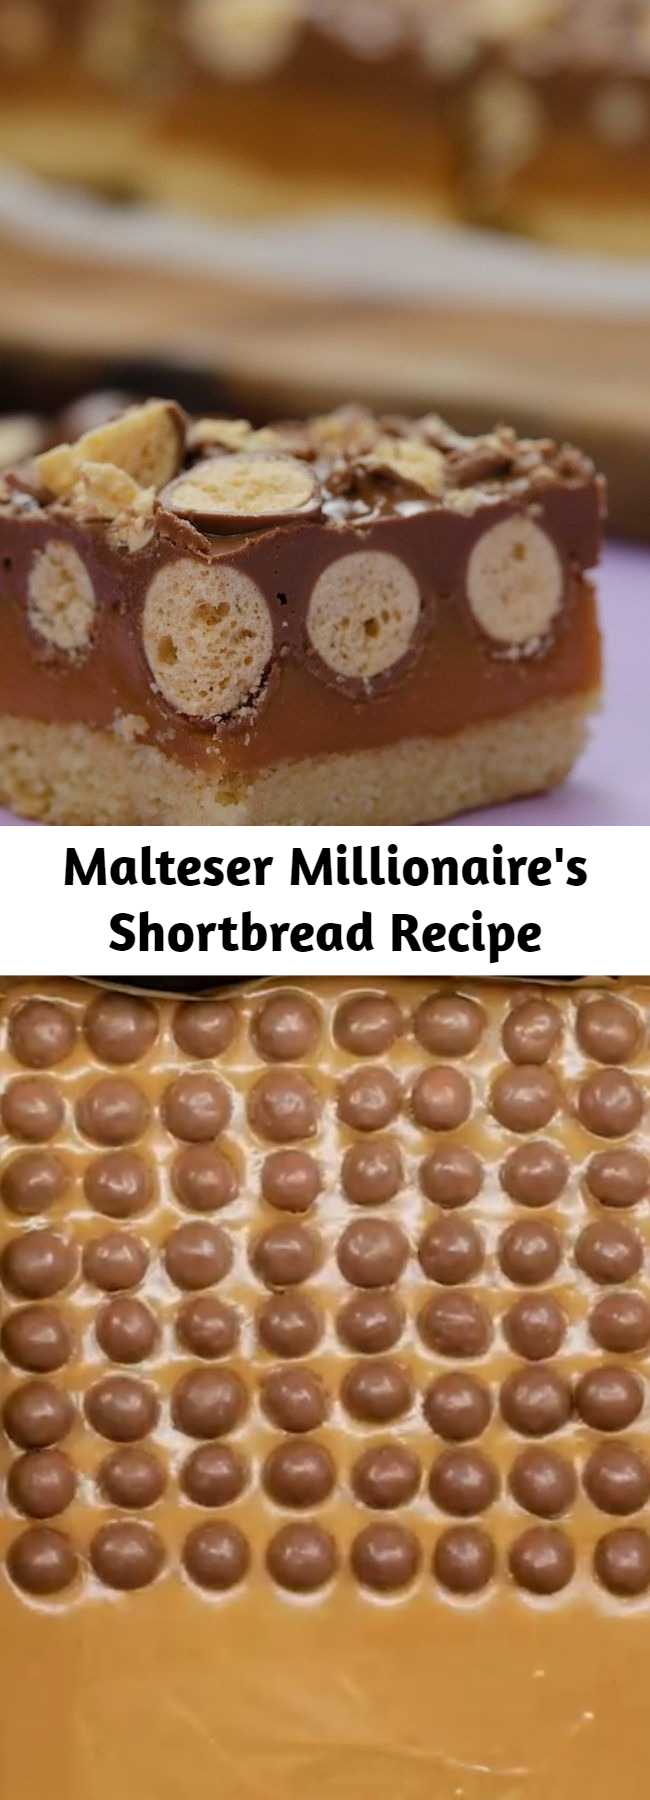 Malteser Millionaire's Shortbread Recipe - To all the Malteser fan out there, this is a next level Malteser Millionaire Shortbread!